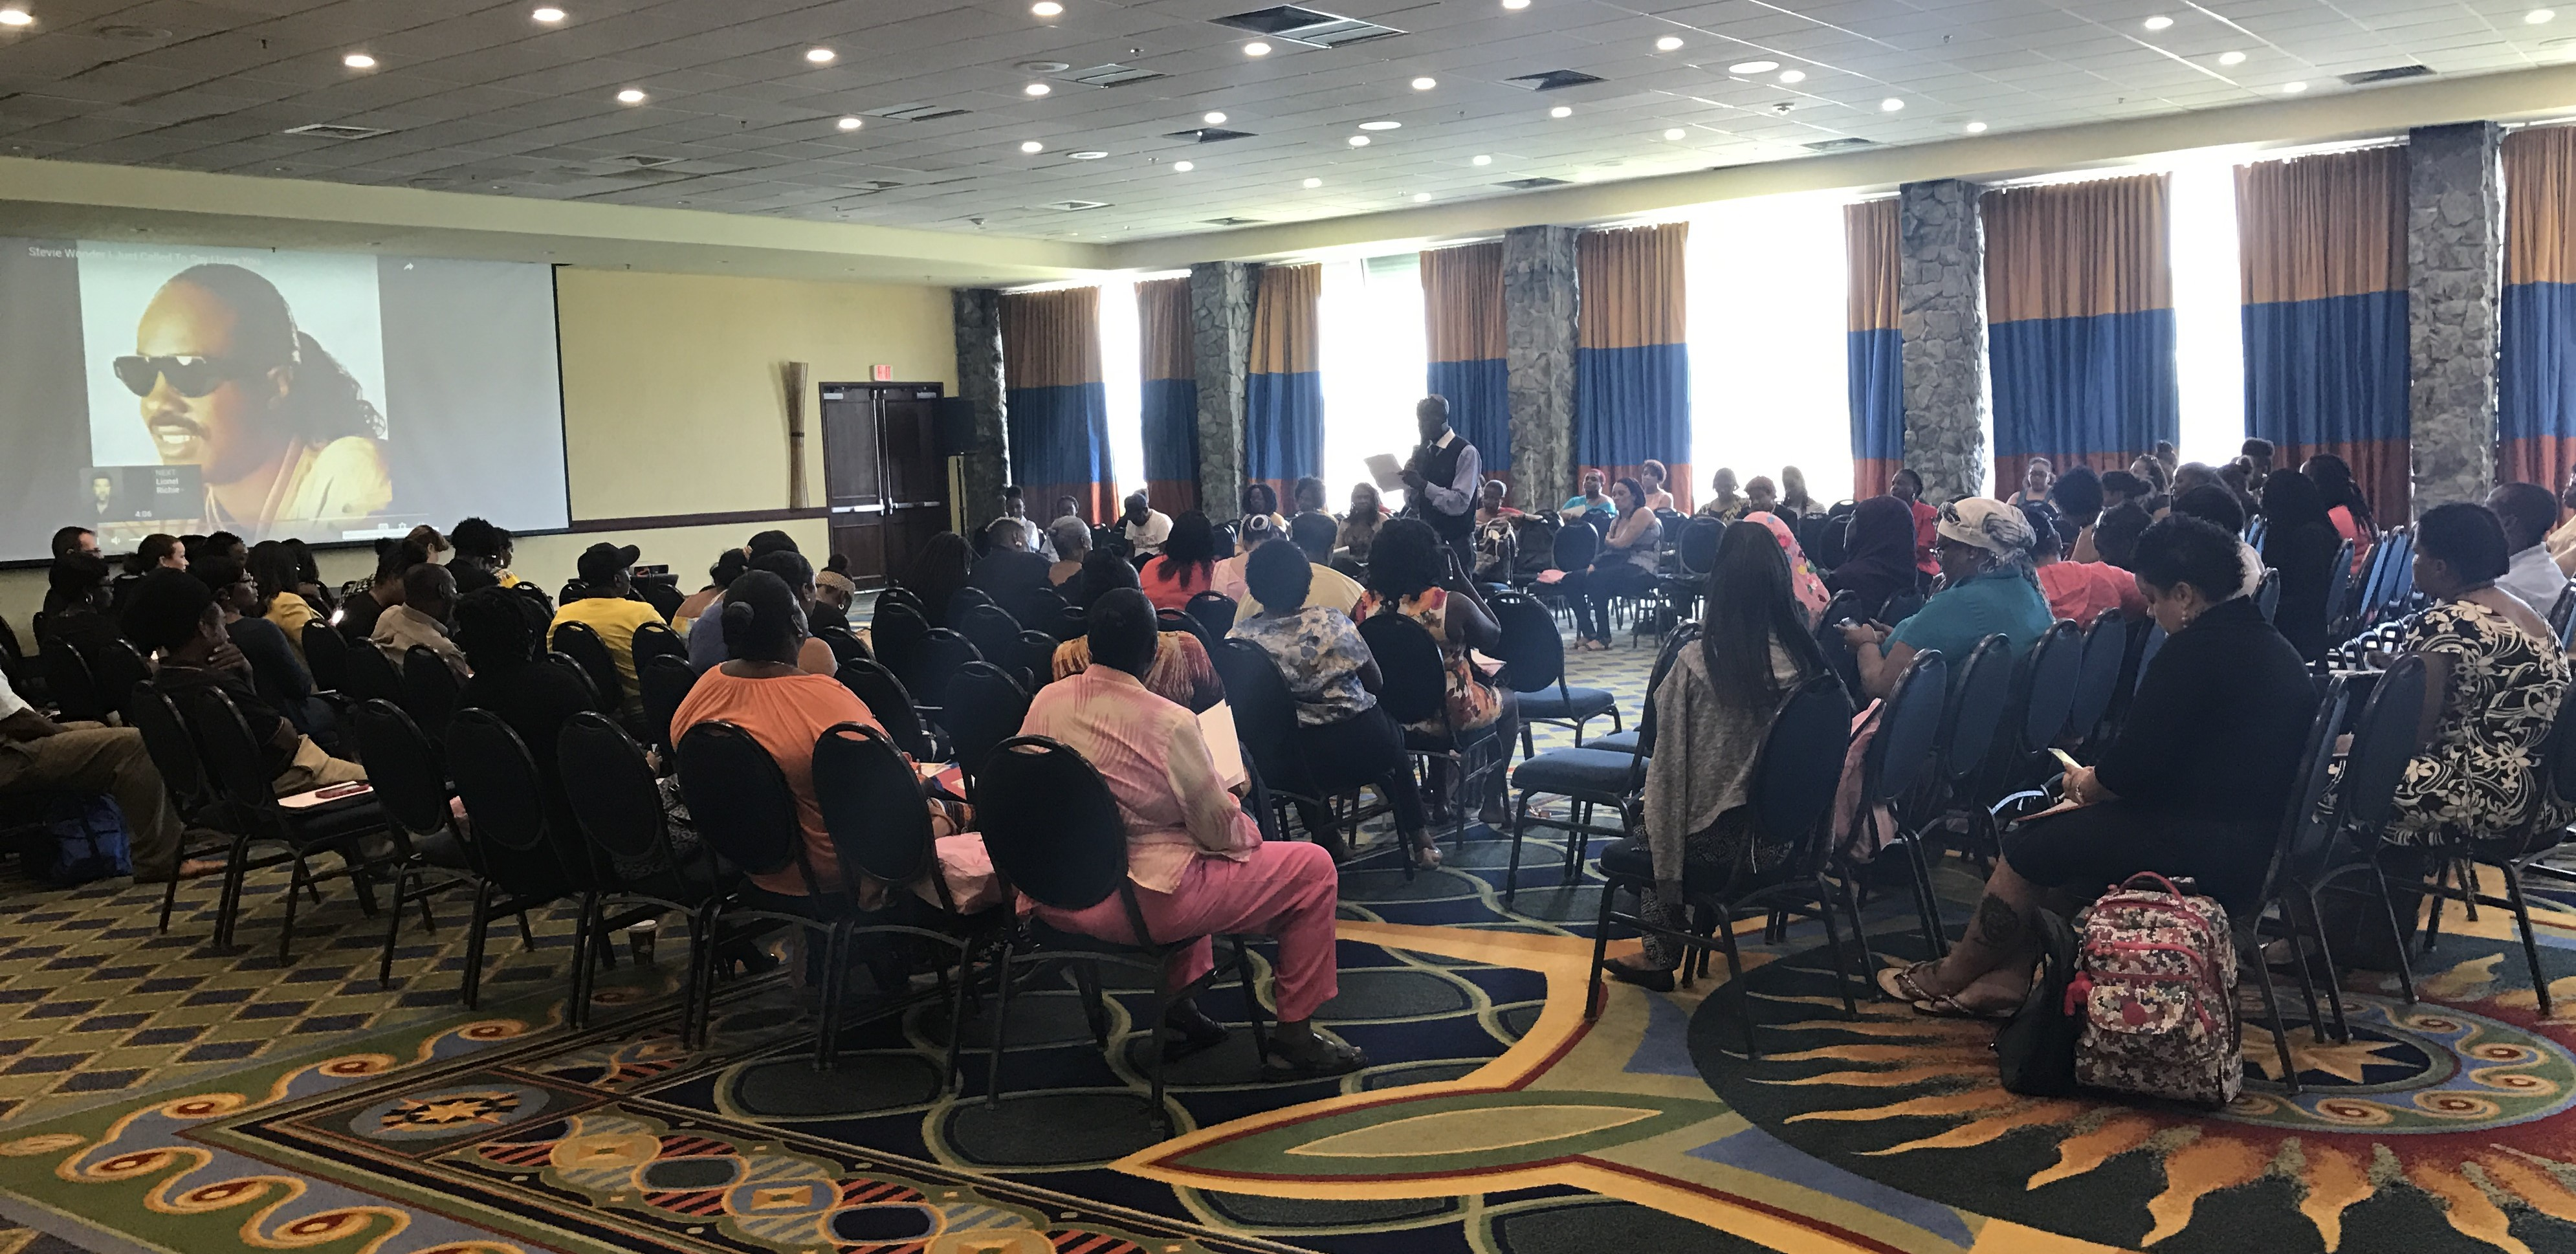 Parent Conference held at Marriott's Frenchman's Reef Beach Resort